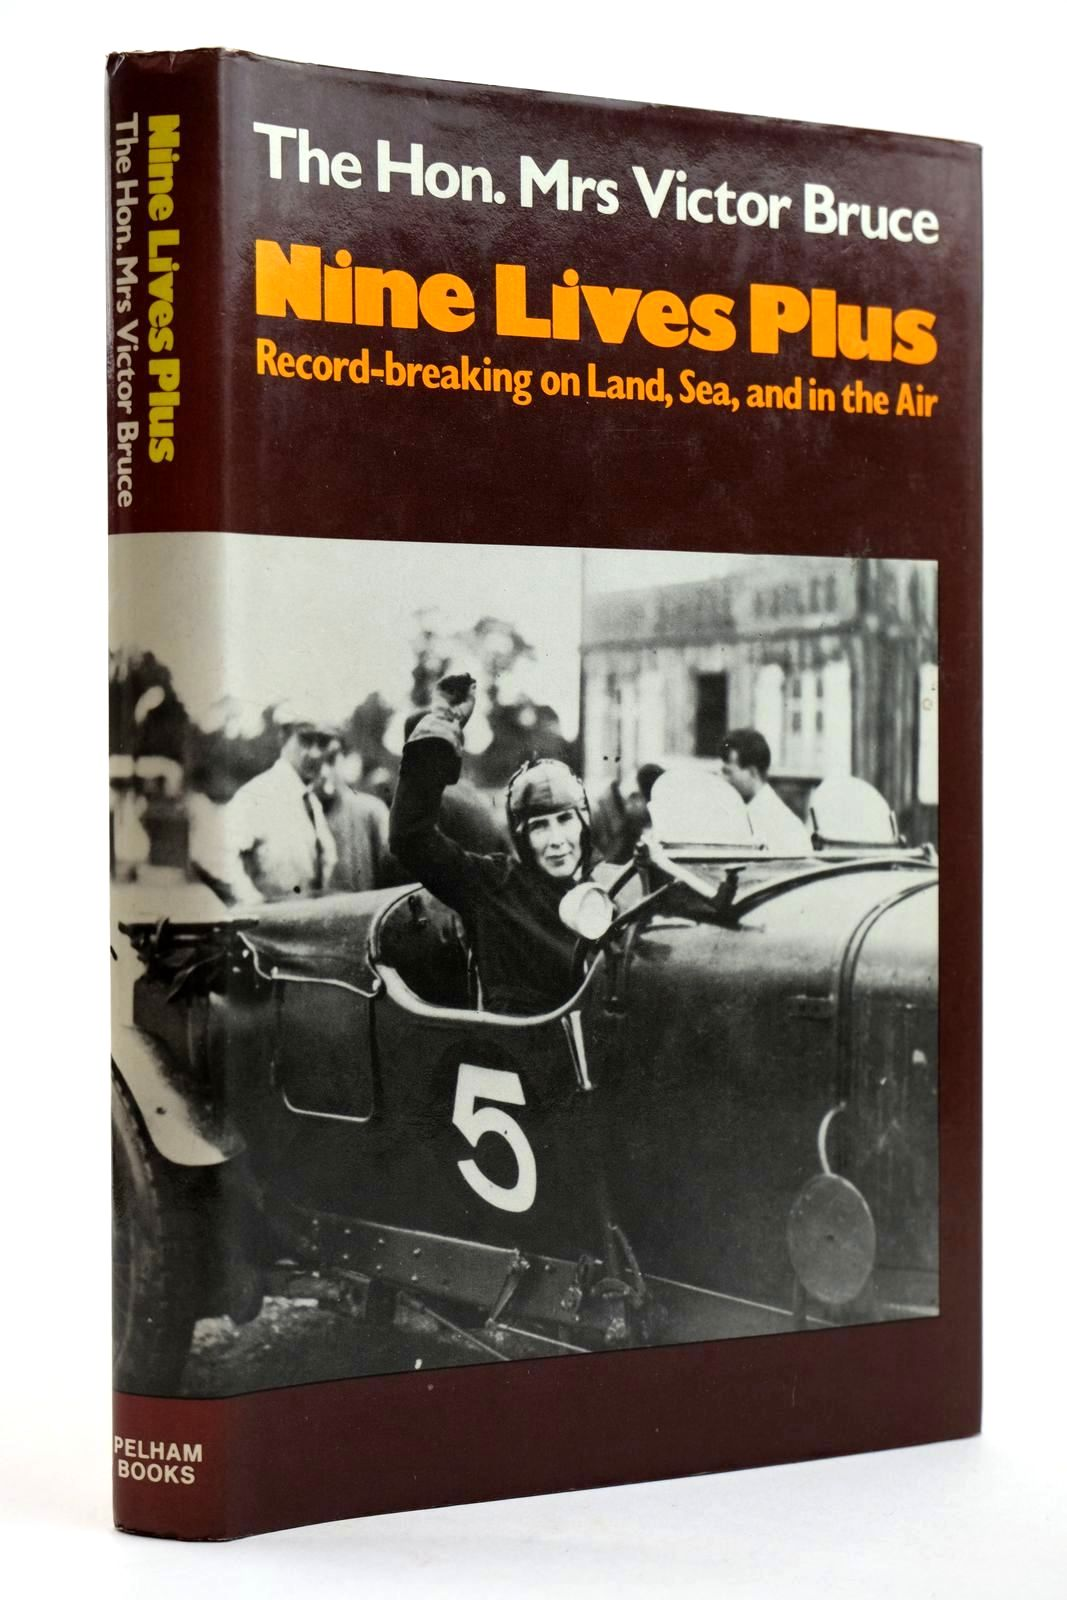 Photo of NINE LIVES PLUS written by Bruce, The Hon. Mrs Victor published by Pelham Books (STOCK CODE: 2131930)  for sale by Stella & Rose's Books